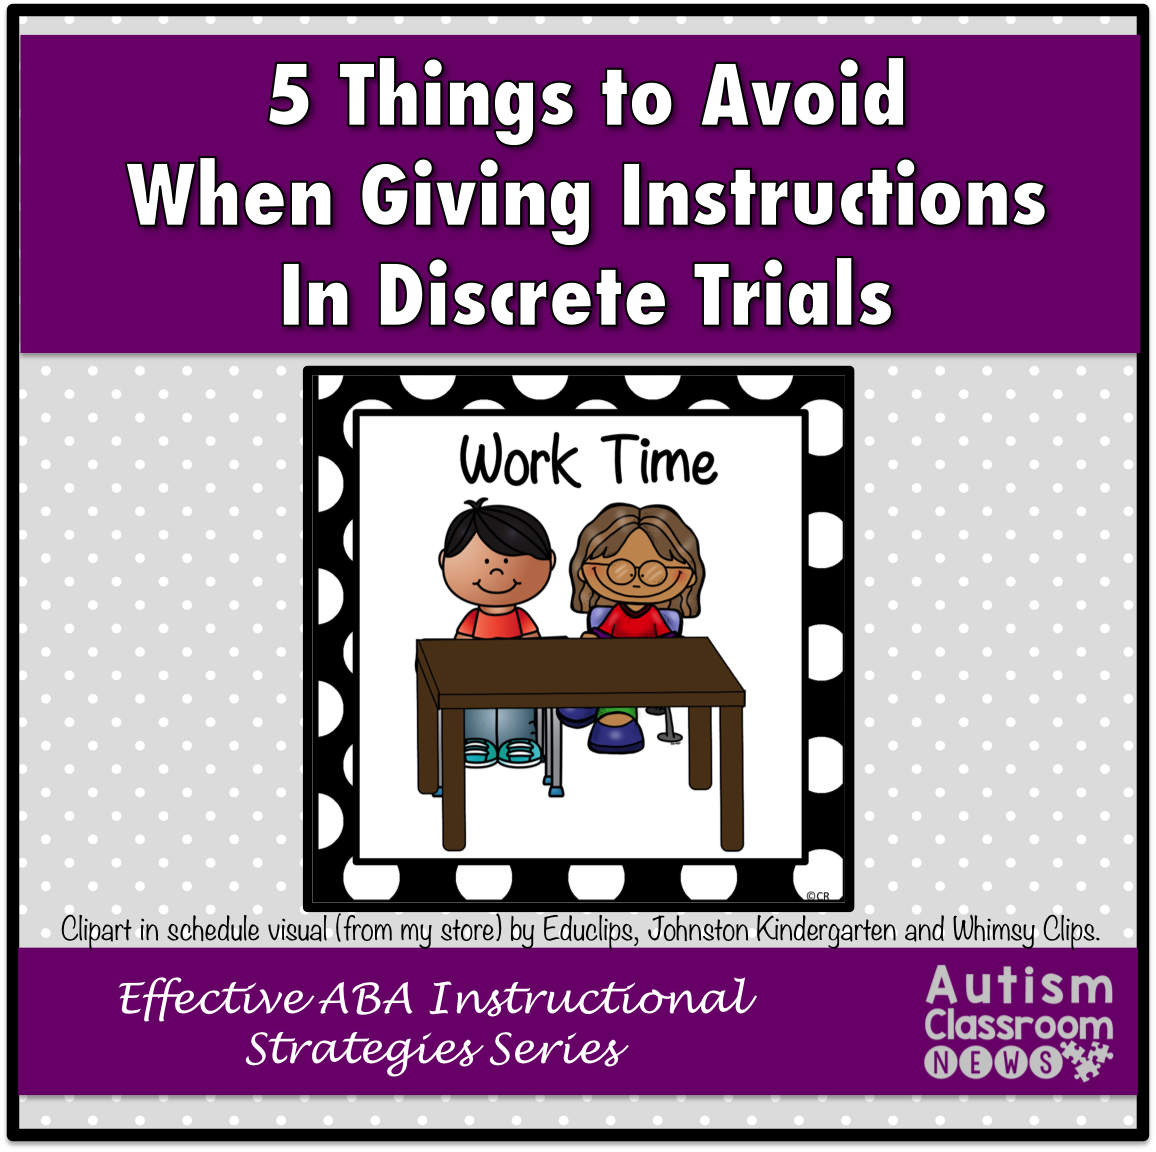 5 Things To Avoid When Giving Instructions In Discrete